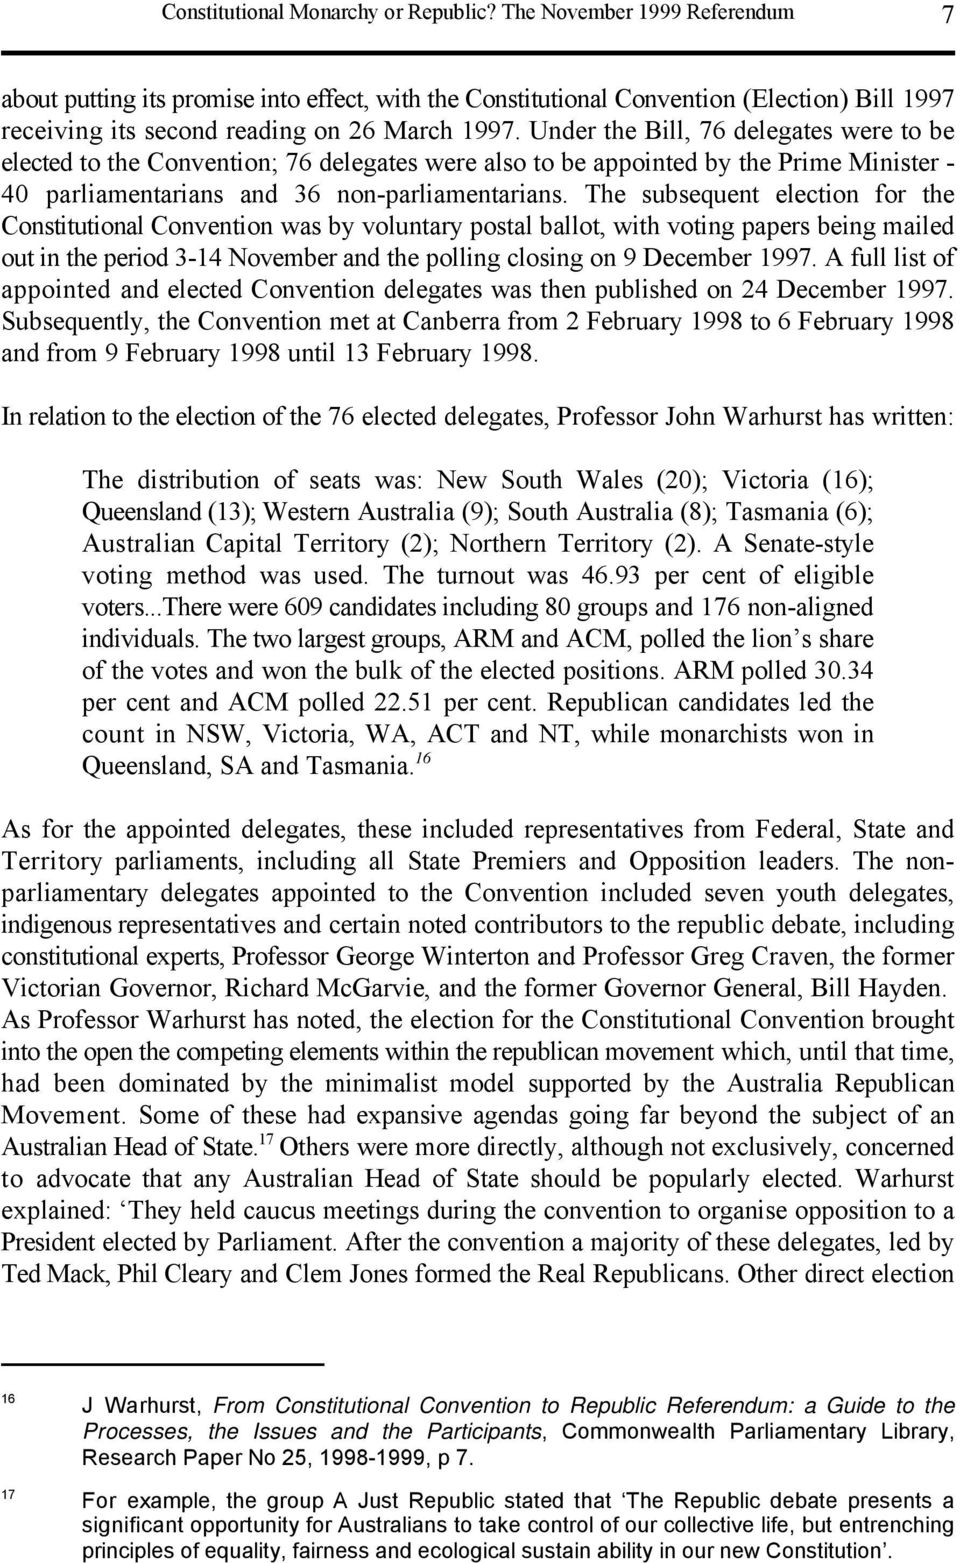 australia should become a republic not a constitutional monarchy essay Constitutional perspectives on an australian republic essays in honour of  professor george winterton  australia attempted to switch from a constitutional  monarchy to a republic  (pdf) files - which can be downloaded from the  adobe web site  click here to download the viewer if you do not have it.